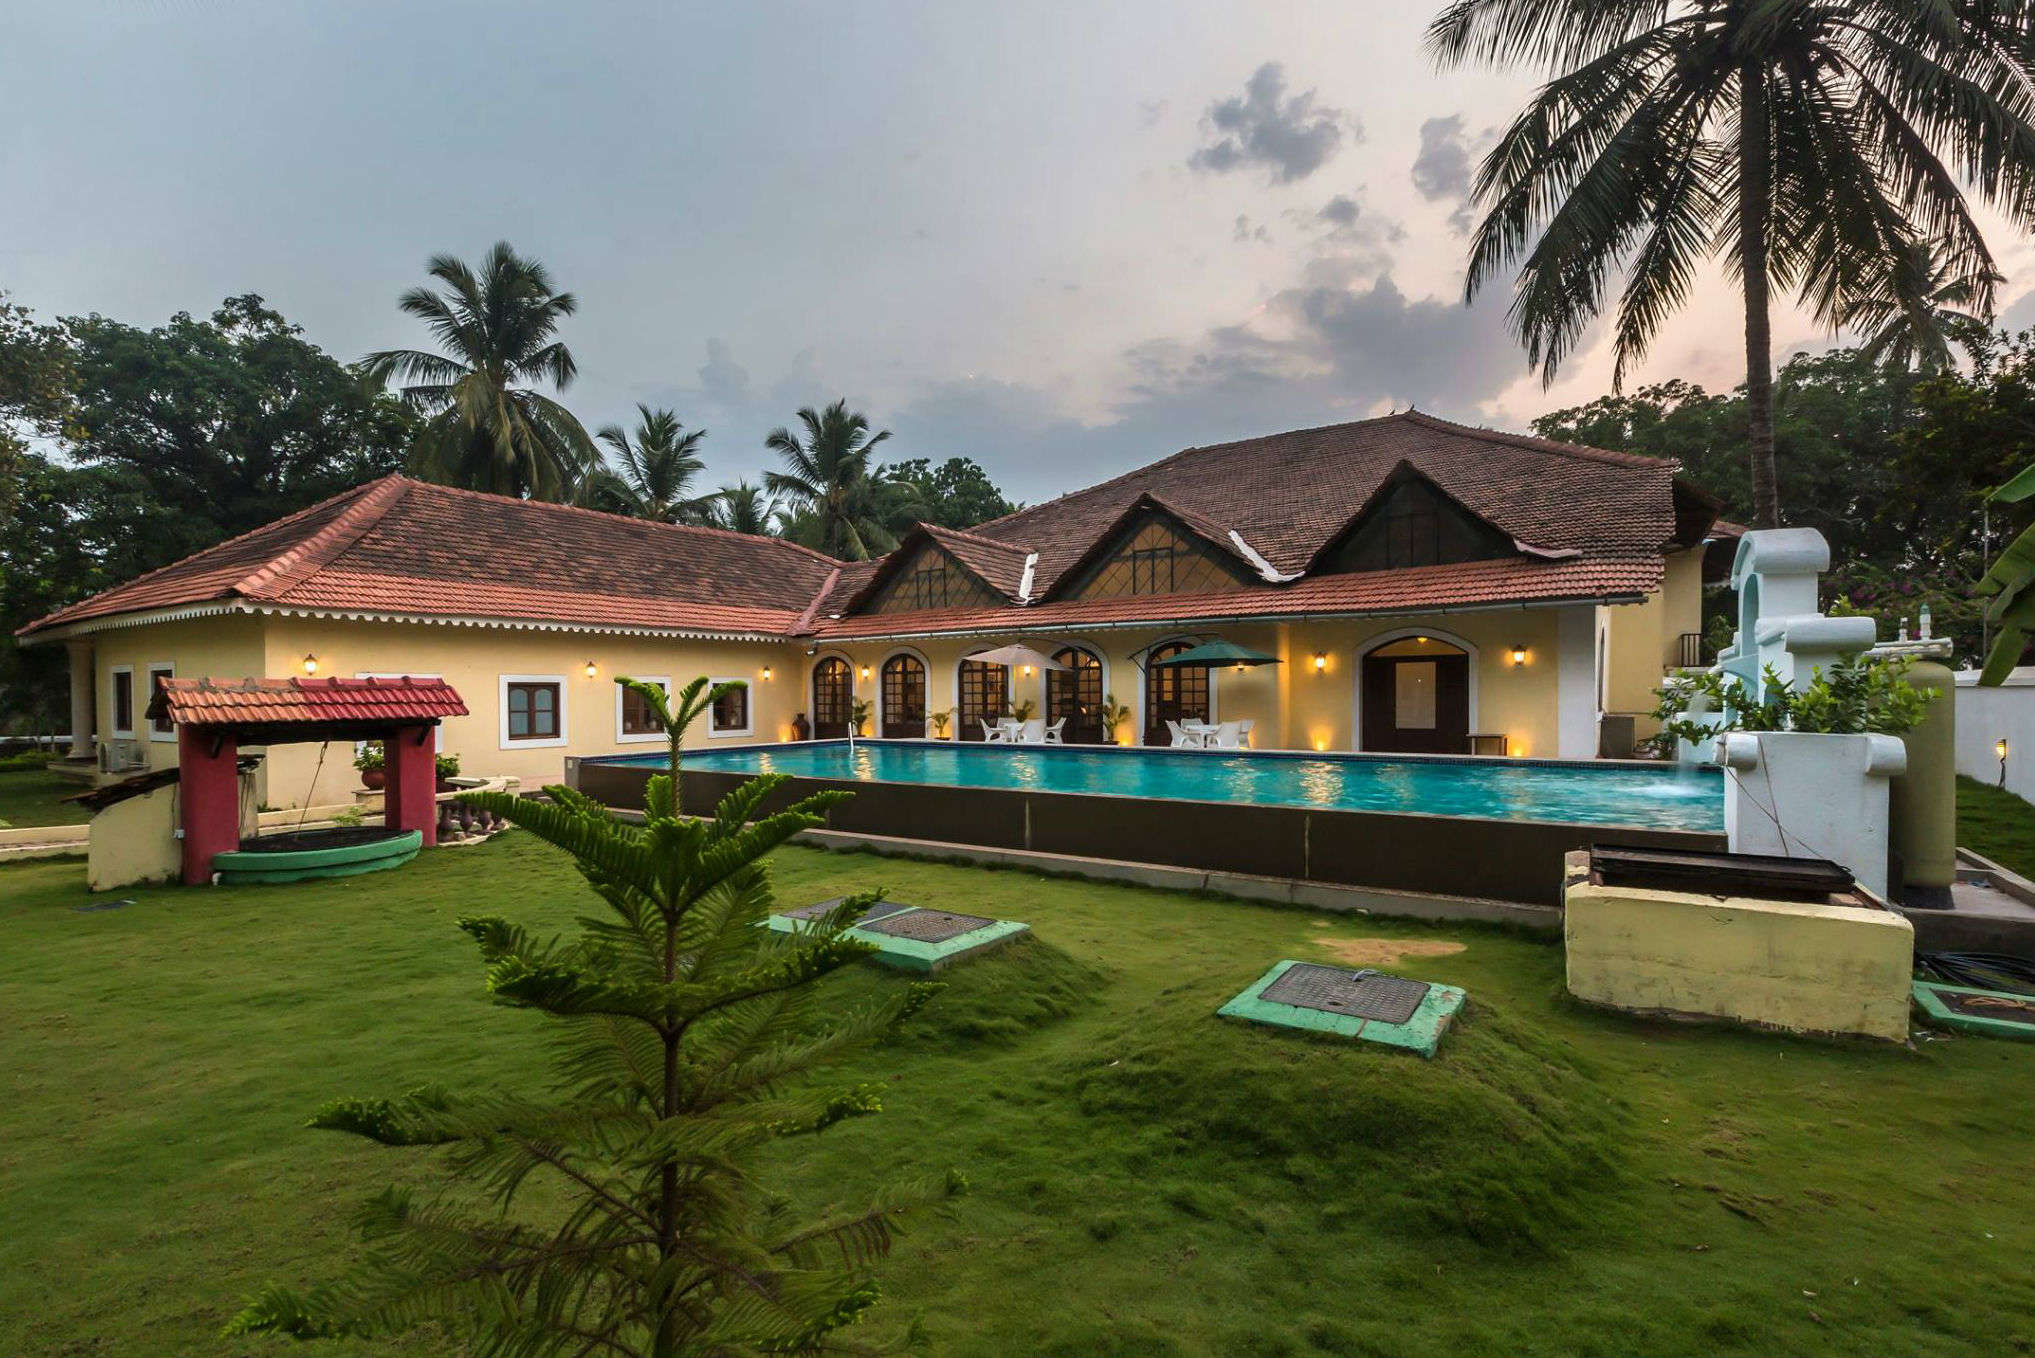 Pure leisure – stay at a 350-year-old bungalow in Goa